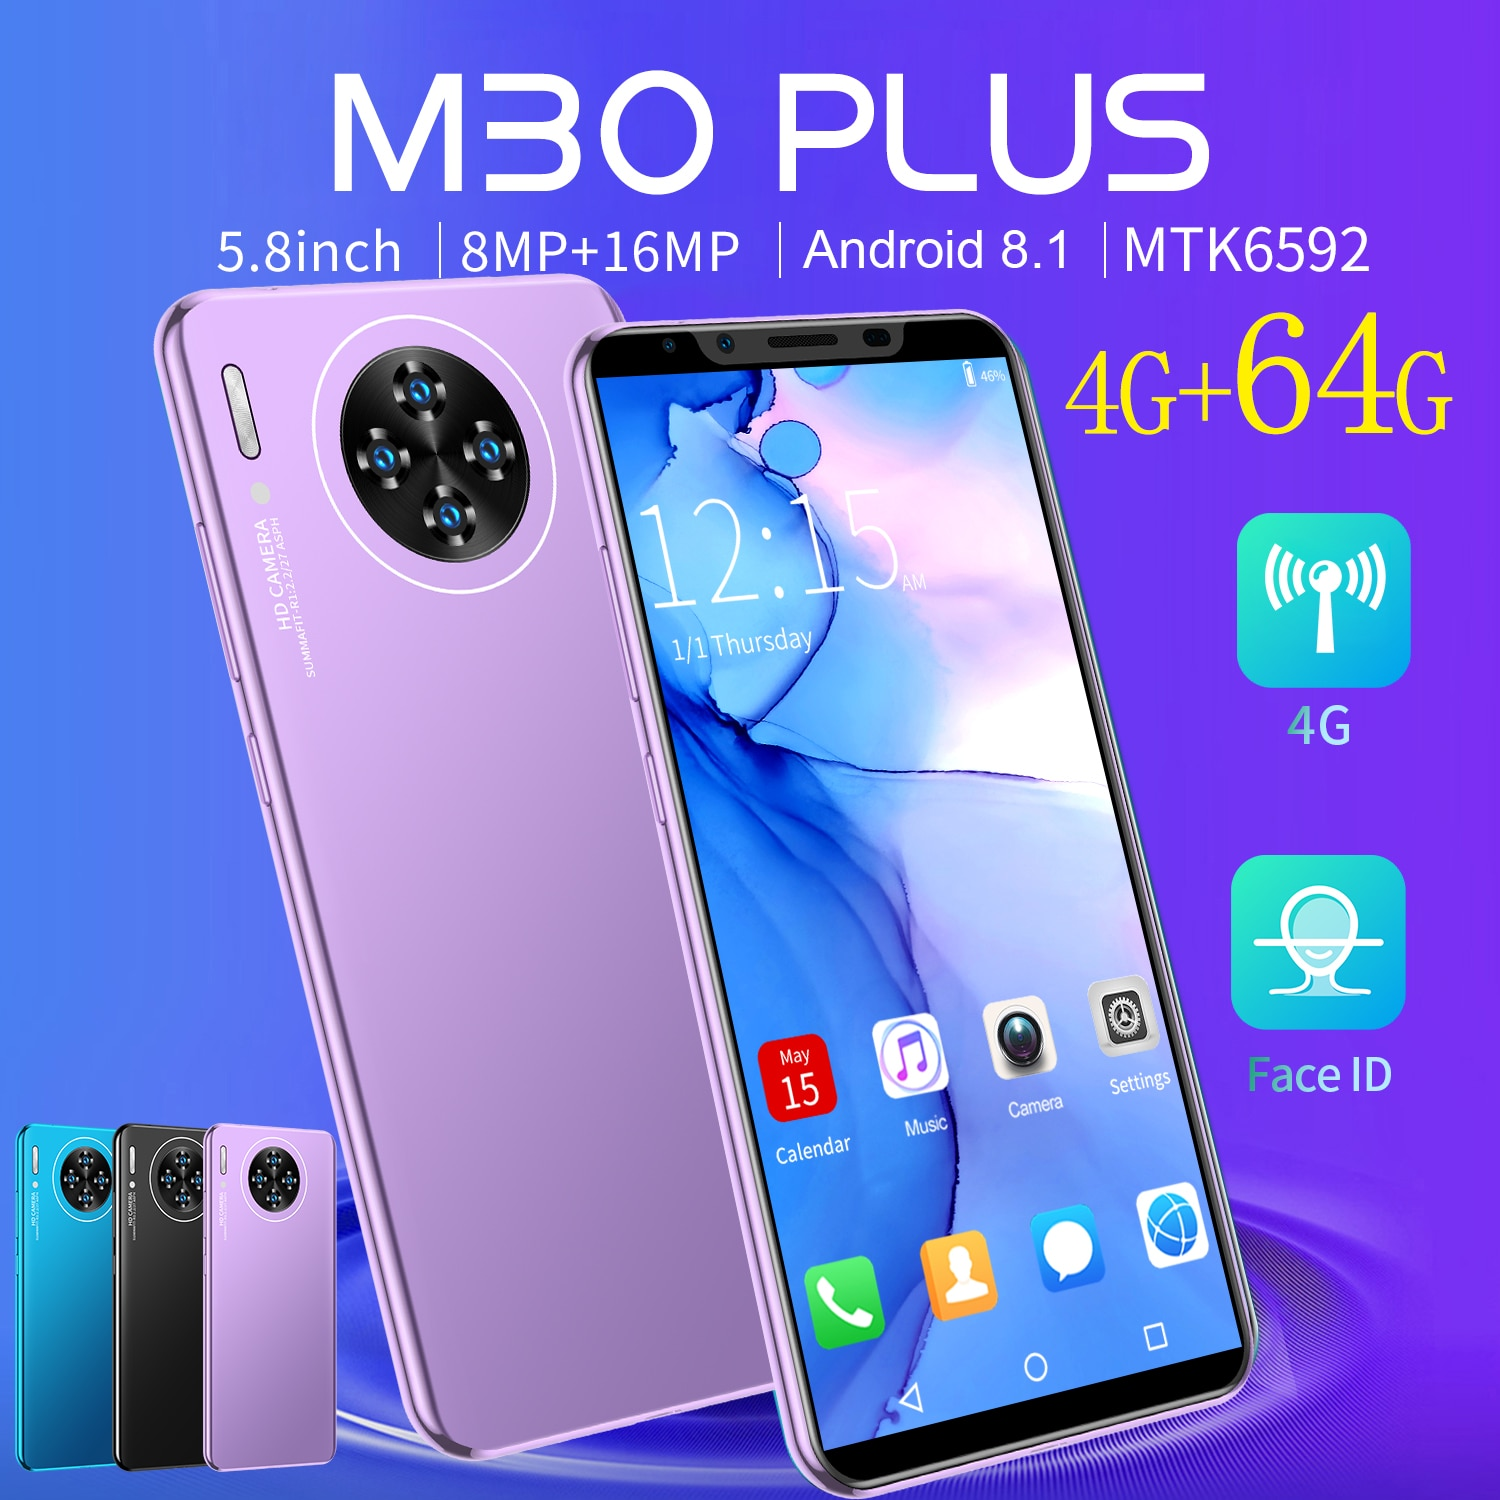 Cheap Phone Galxy M30 Plus 5.8 Inch MTK6592 Andriod8.1 4+64GB 8 Core Smartphones 8+16MP Camera Global Version Mobile Cell Phone